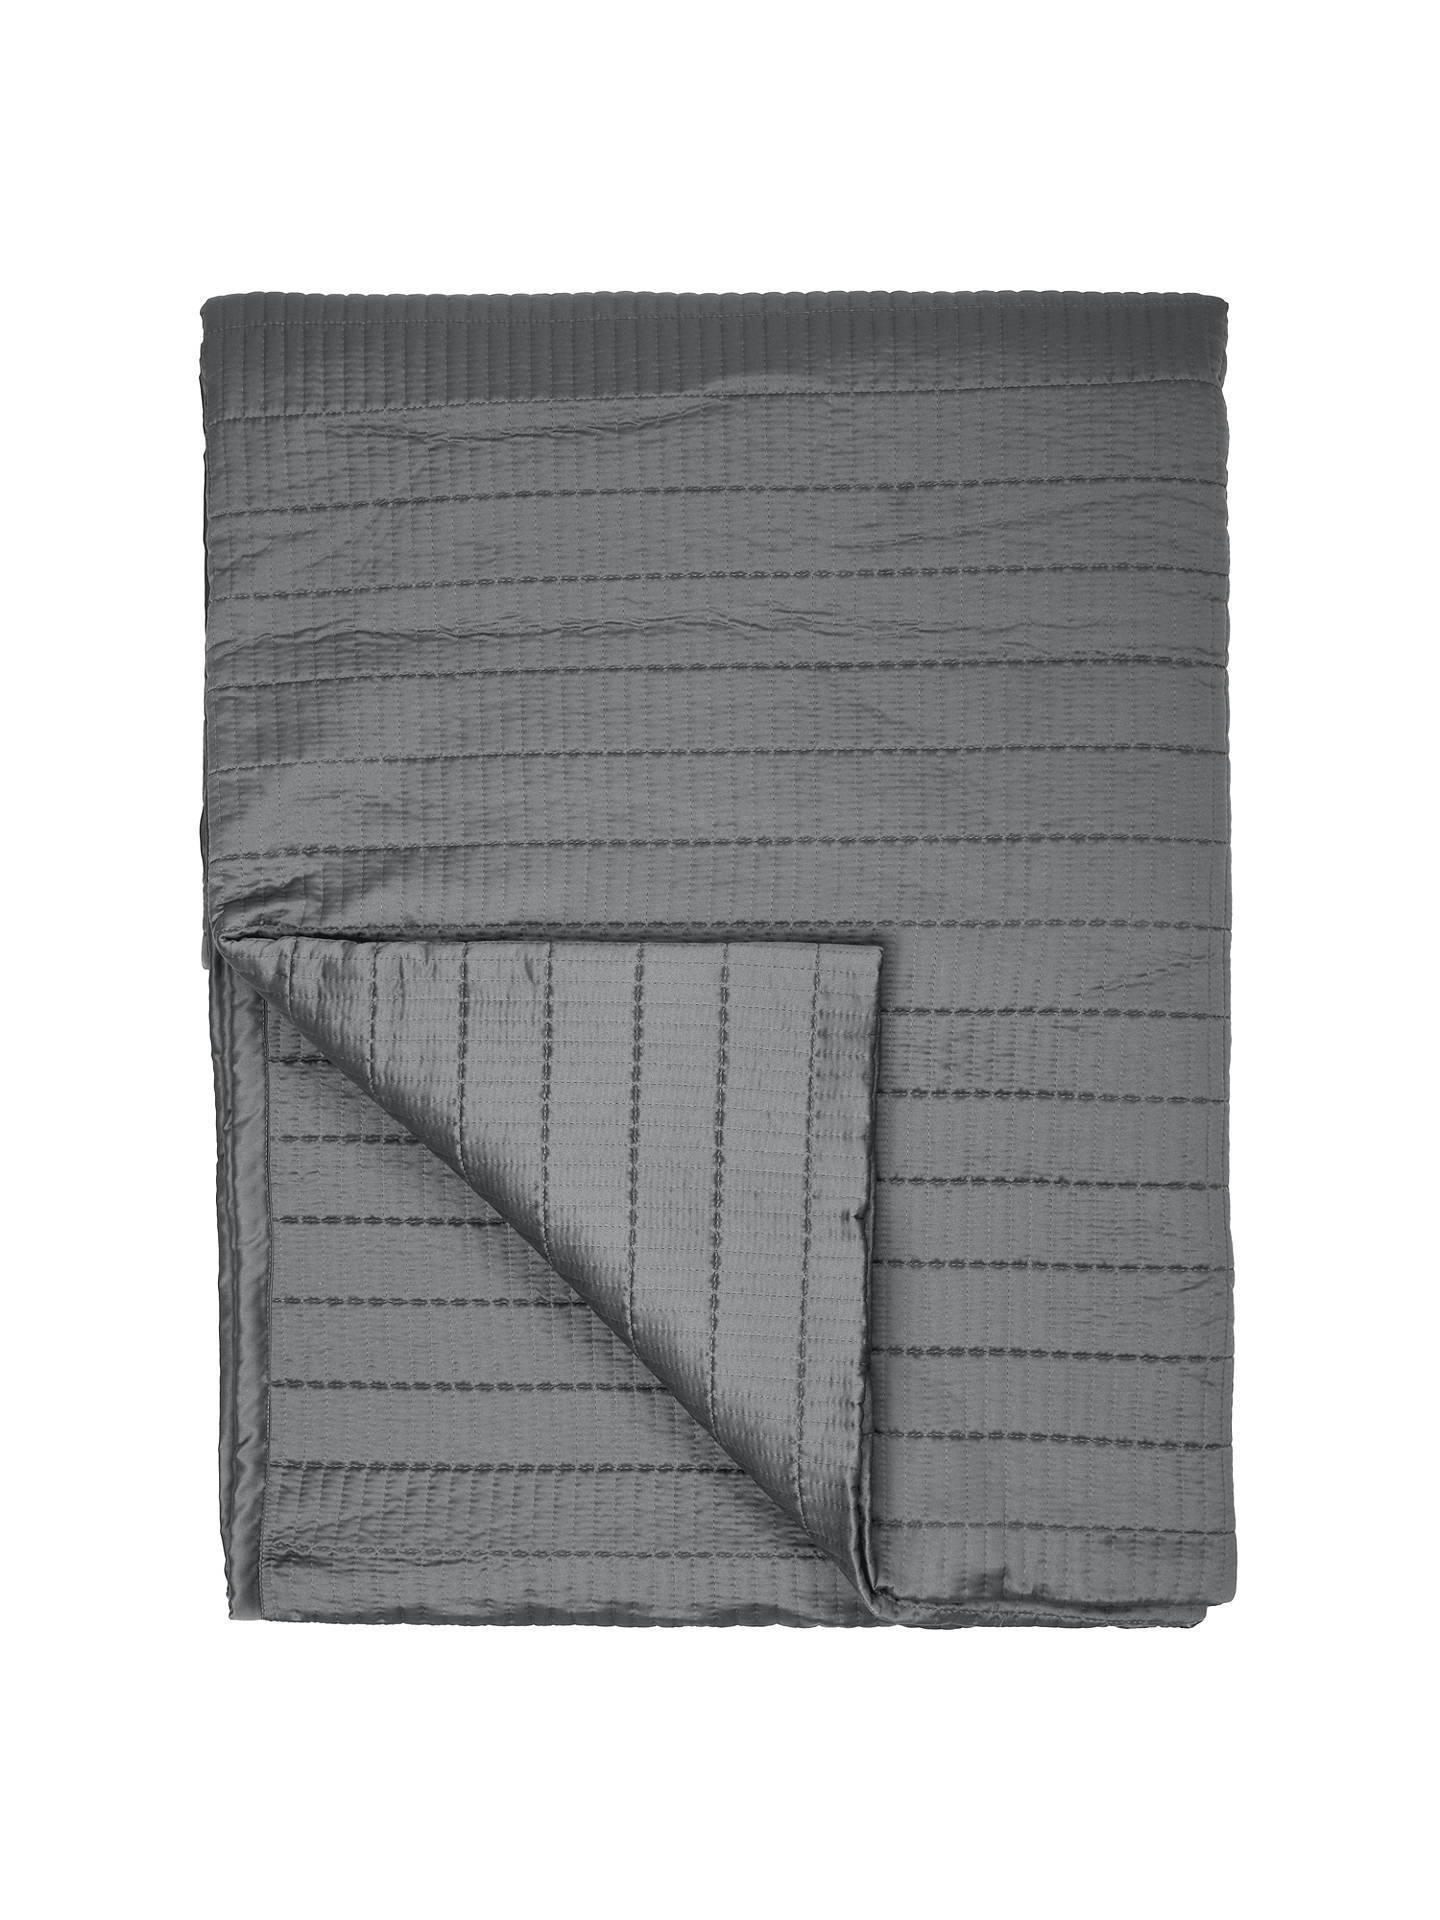 BuyJohn Lewis & Partners Moda Throw, L250 x W260cm, Steel Online at johnlewis.com